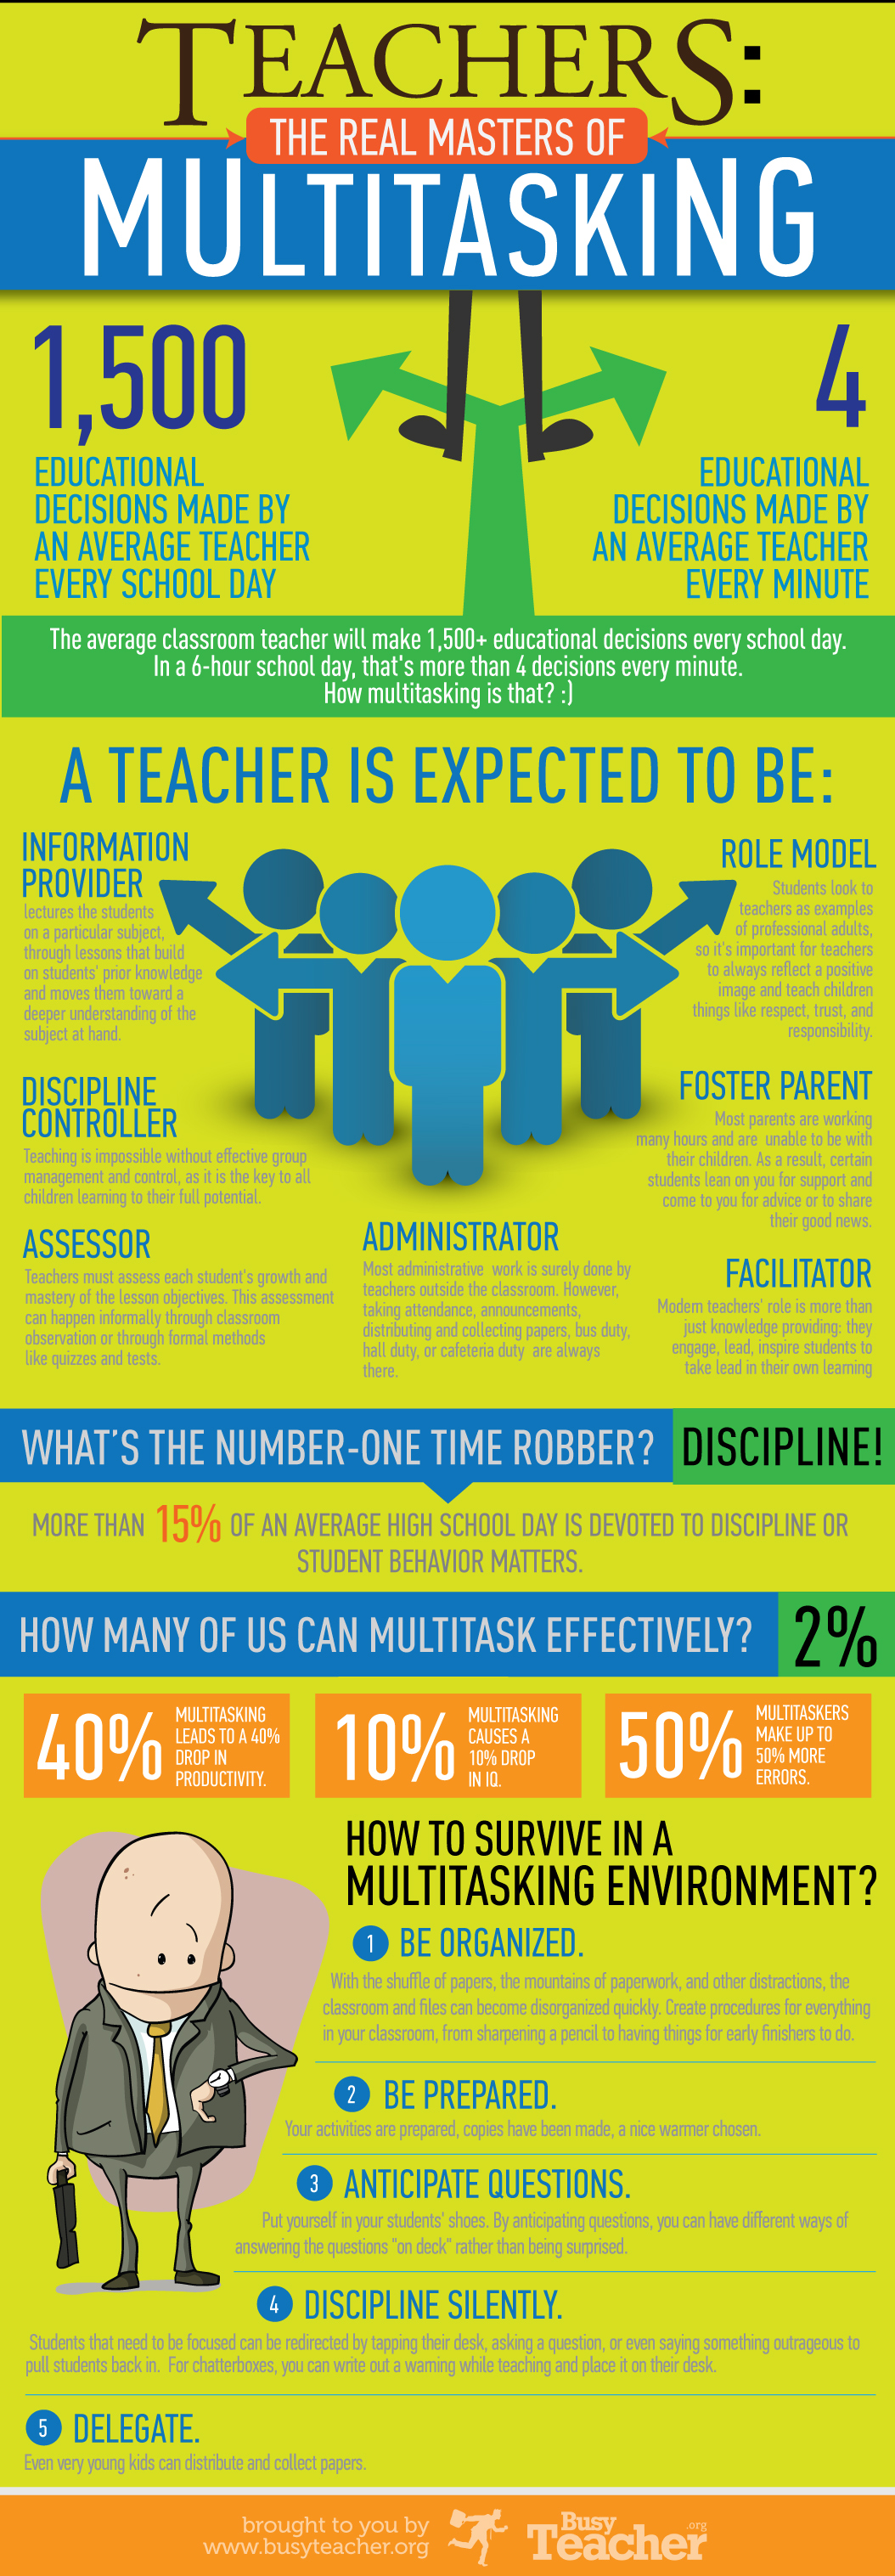 Teachers — The Real Masters of Multitasking: INFOGRAPHIC